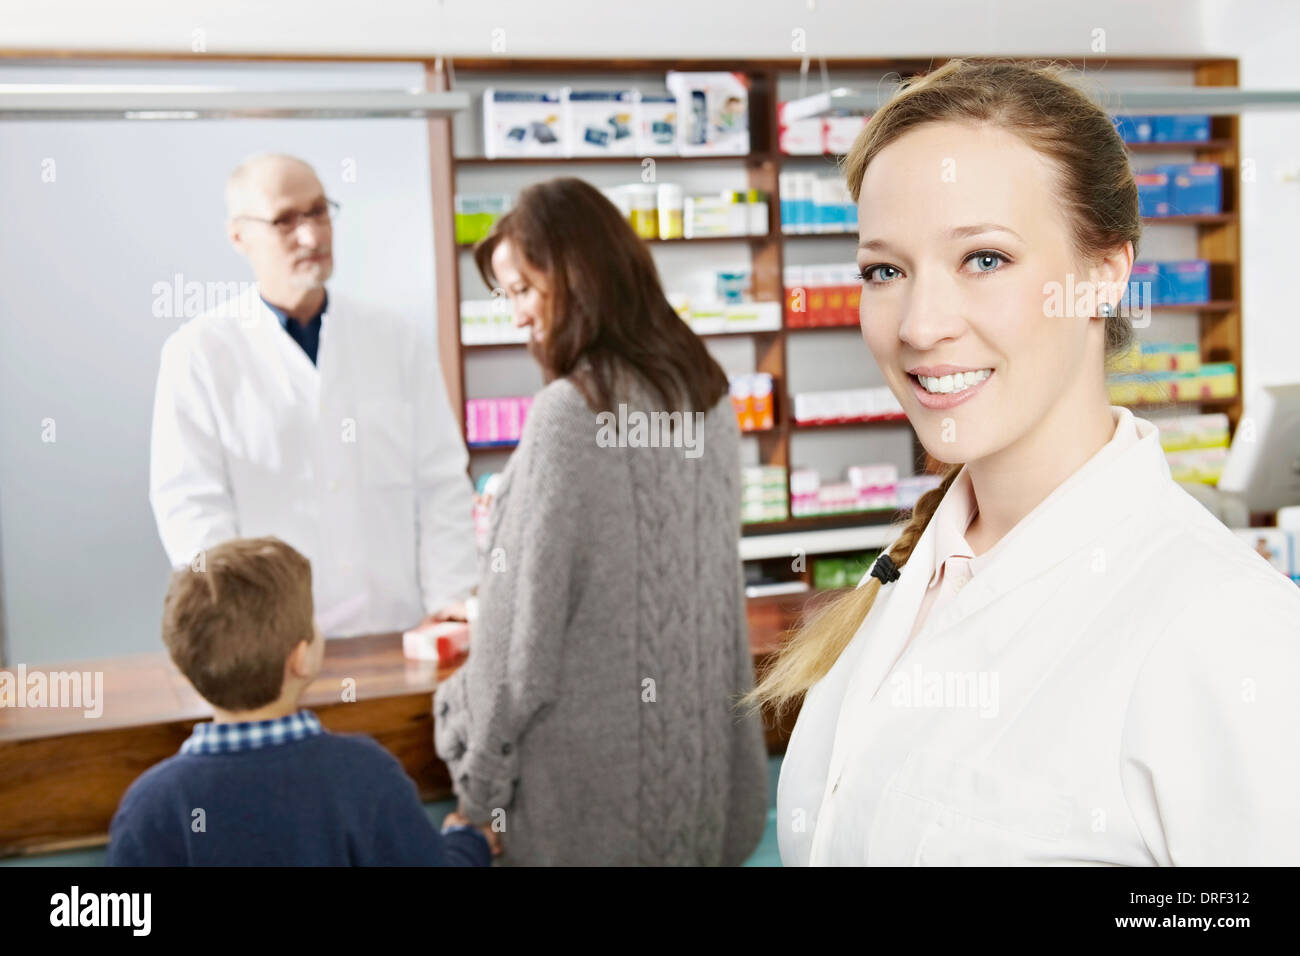 Portrait Of A Female Pharmacist, Customers in Background, Munich, Bavaria, Germany - Stock Image